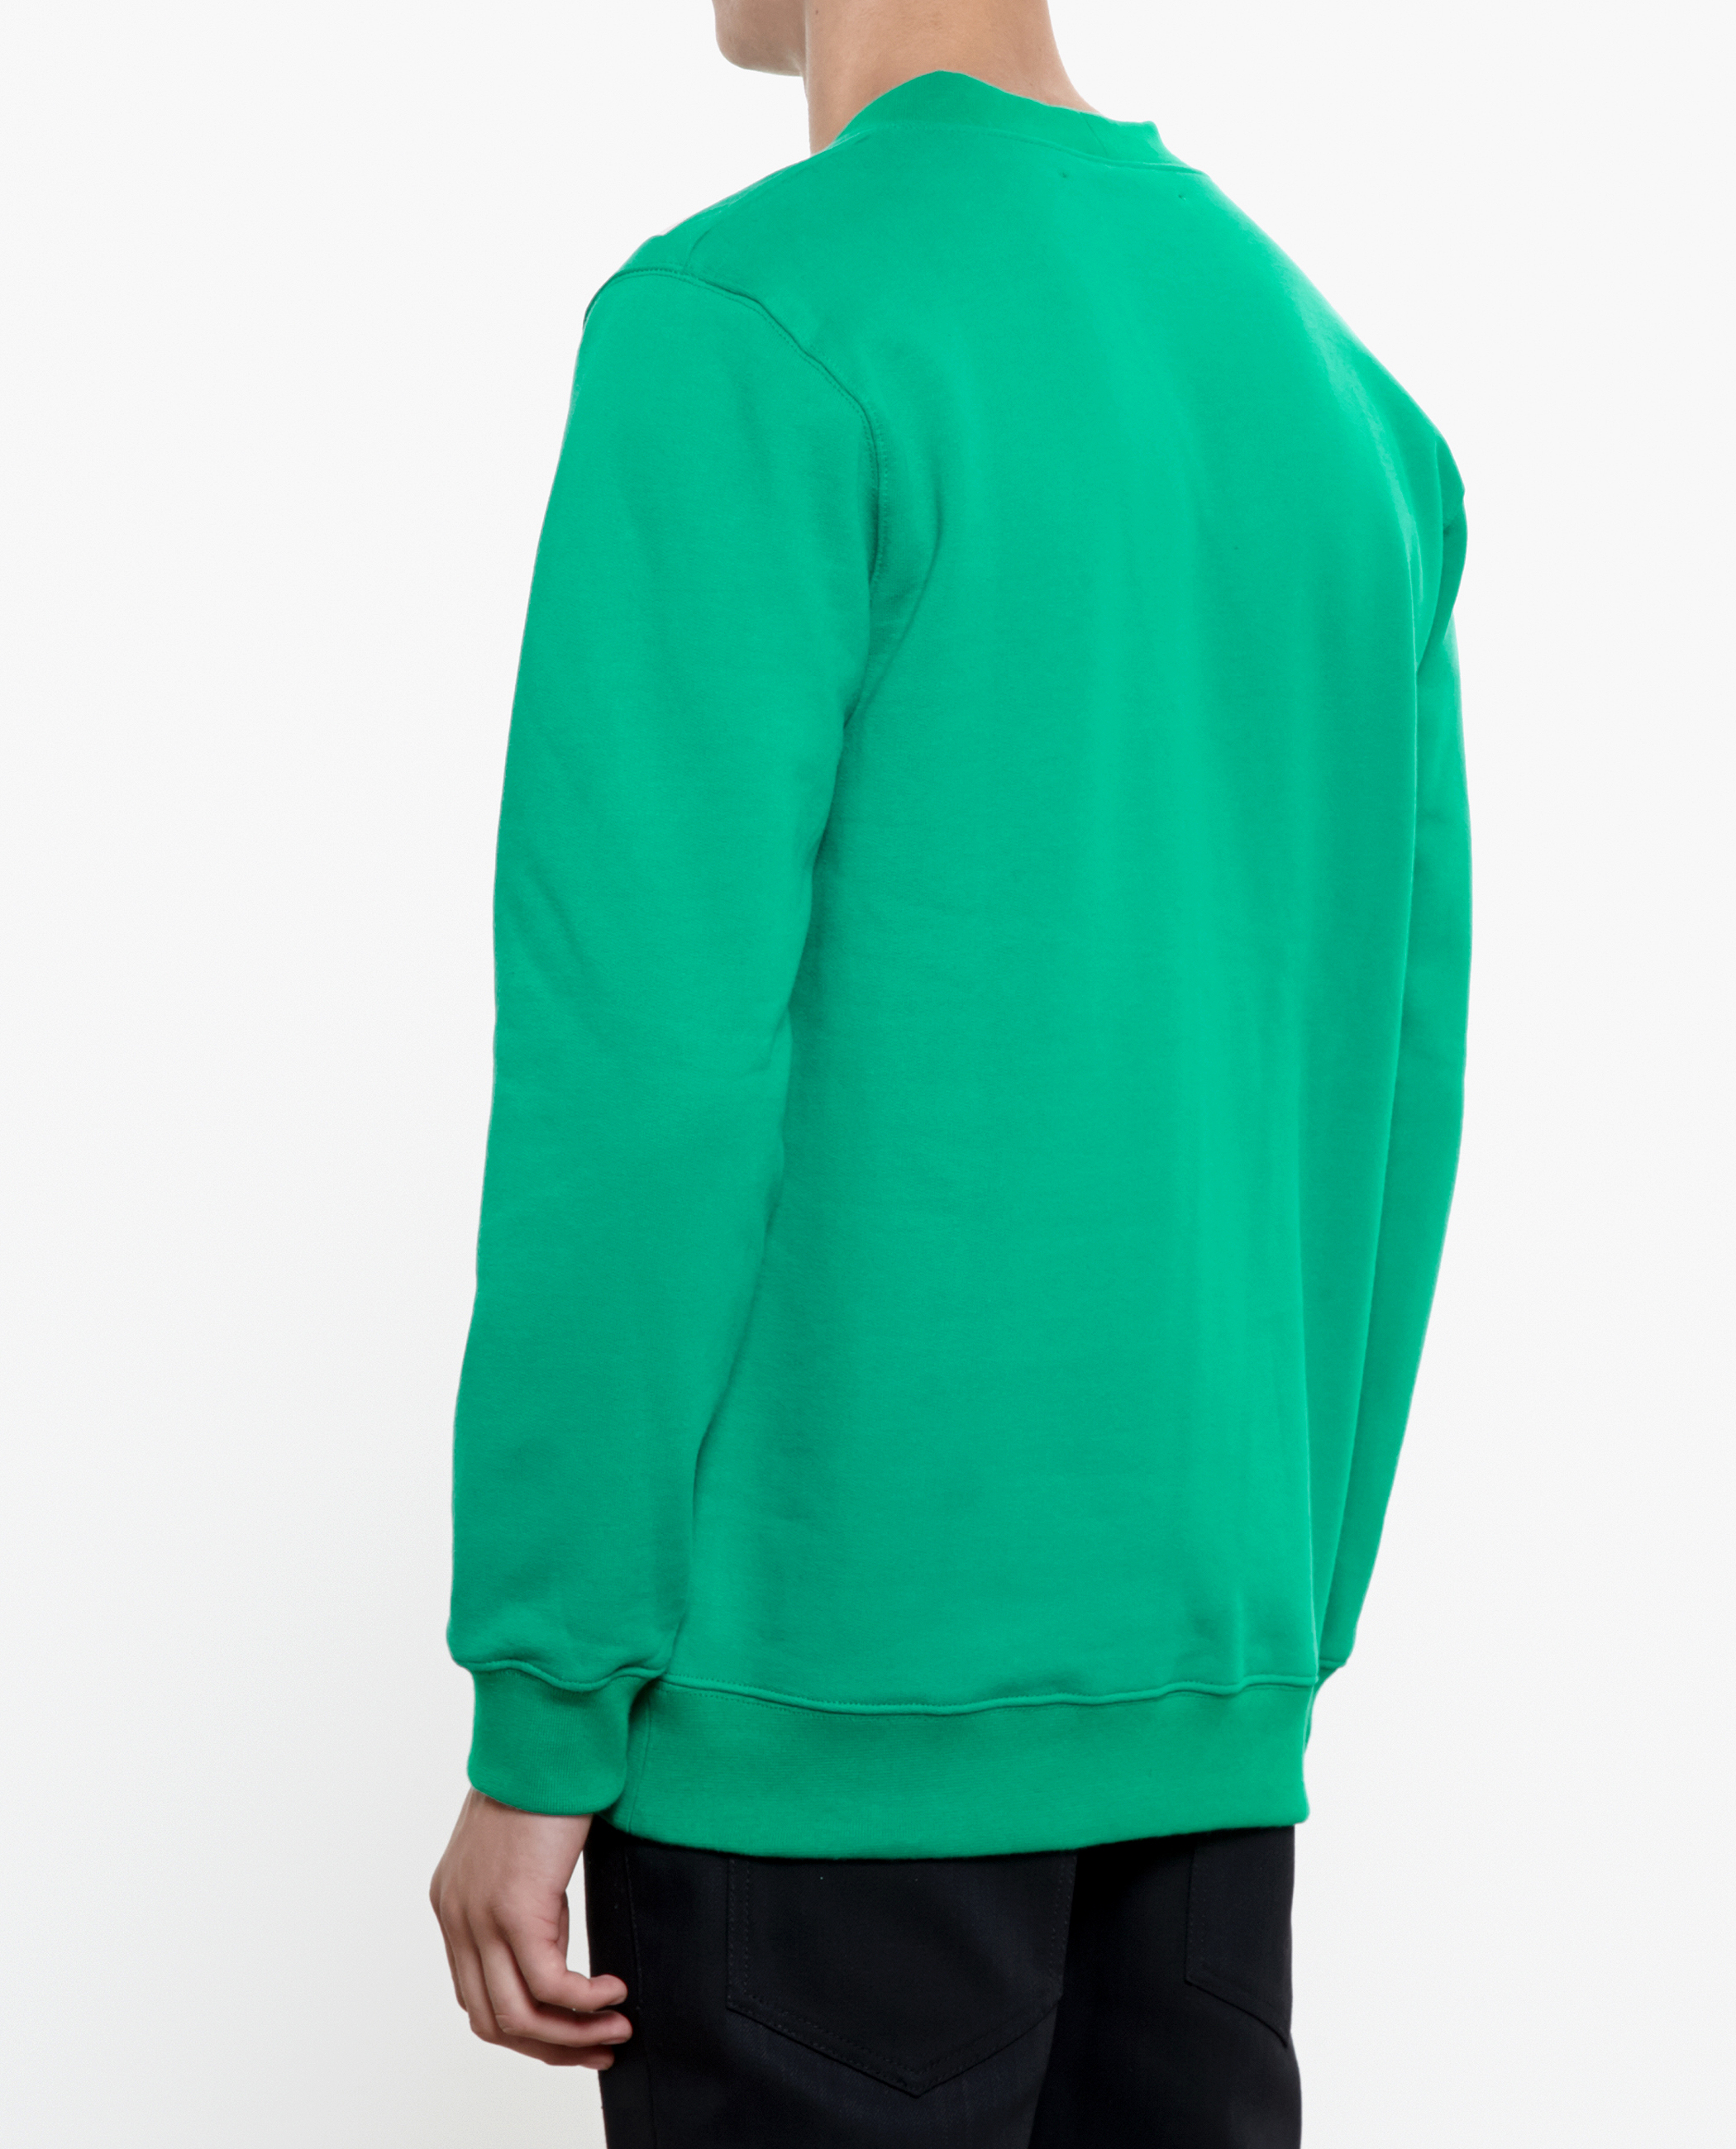 Raf Simons Sterling Ruby Fingernails Print Sweatshirt in Green for Men